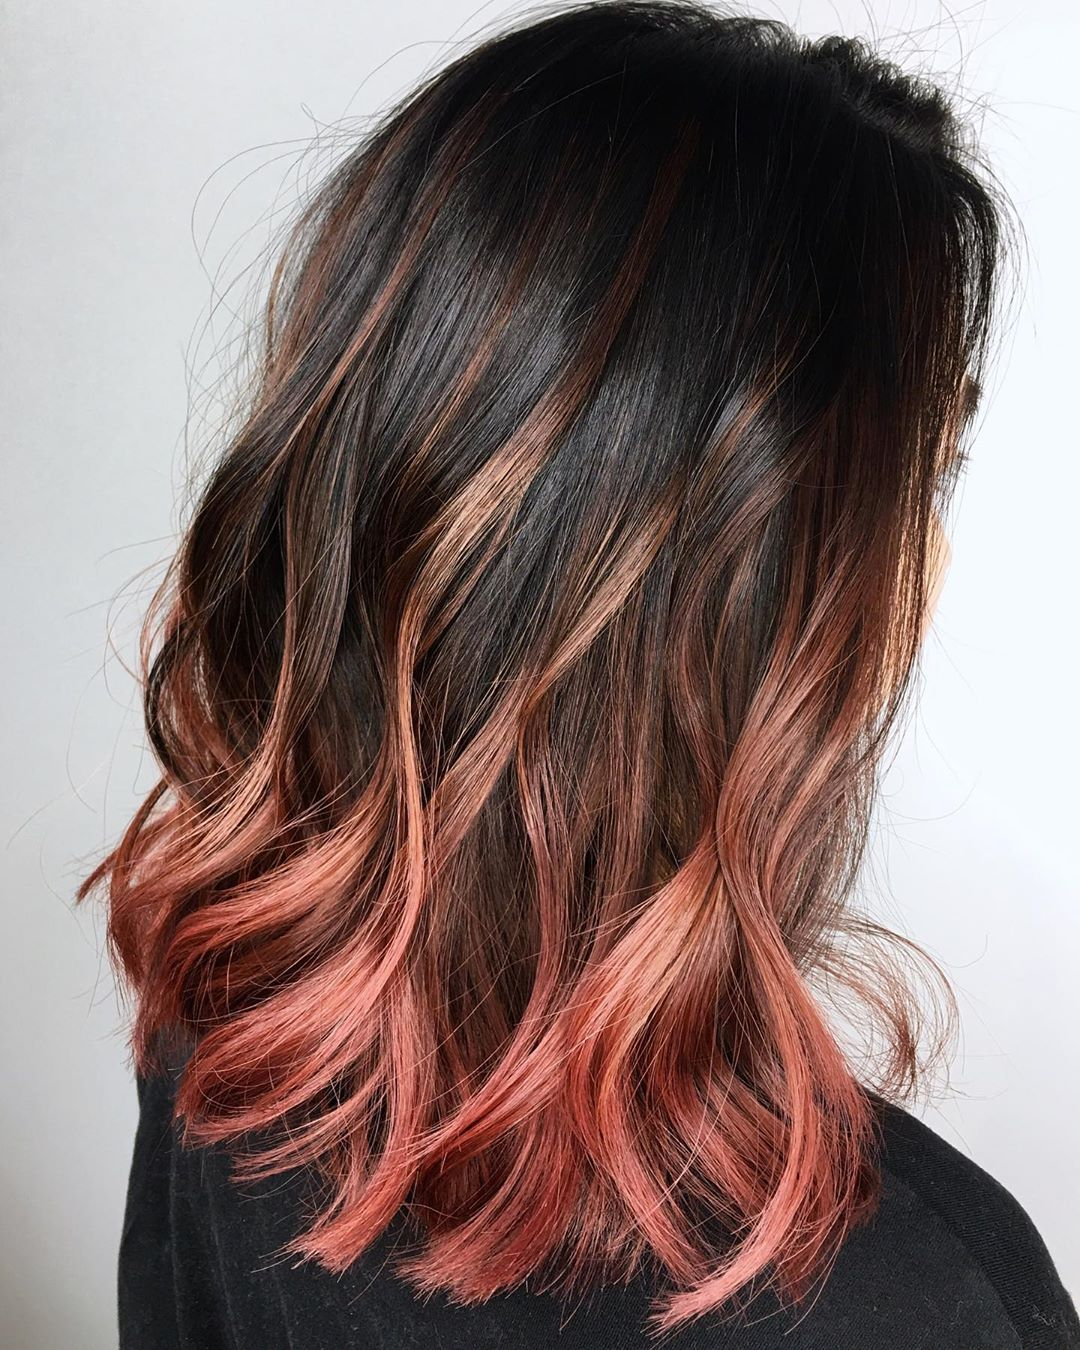 40 Most Popular Ombre Hair Ideas For 2020 Hair Adviser